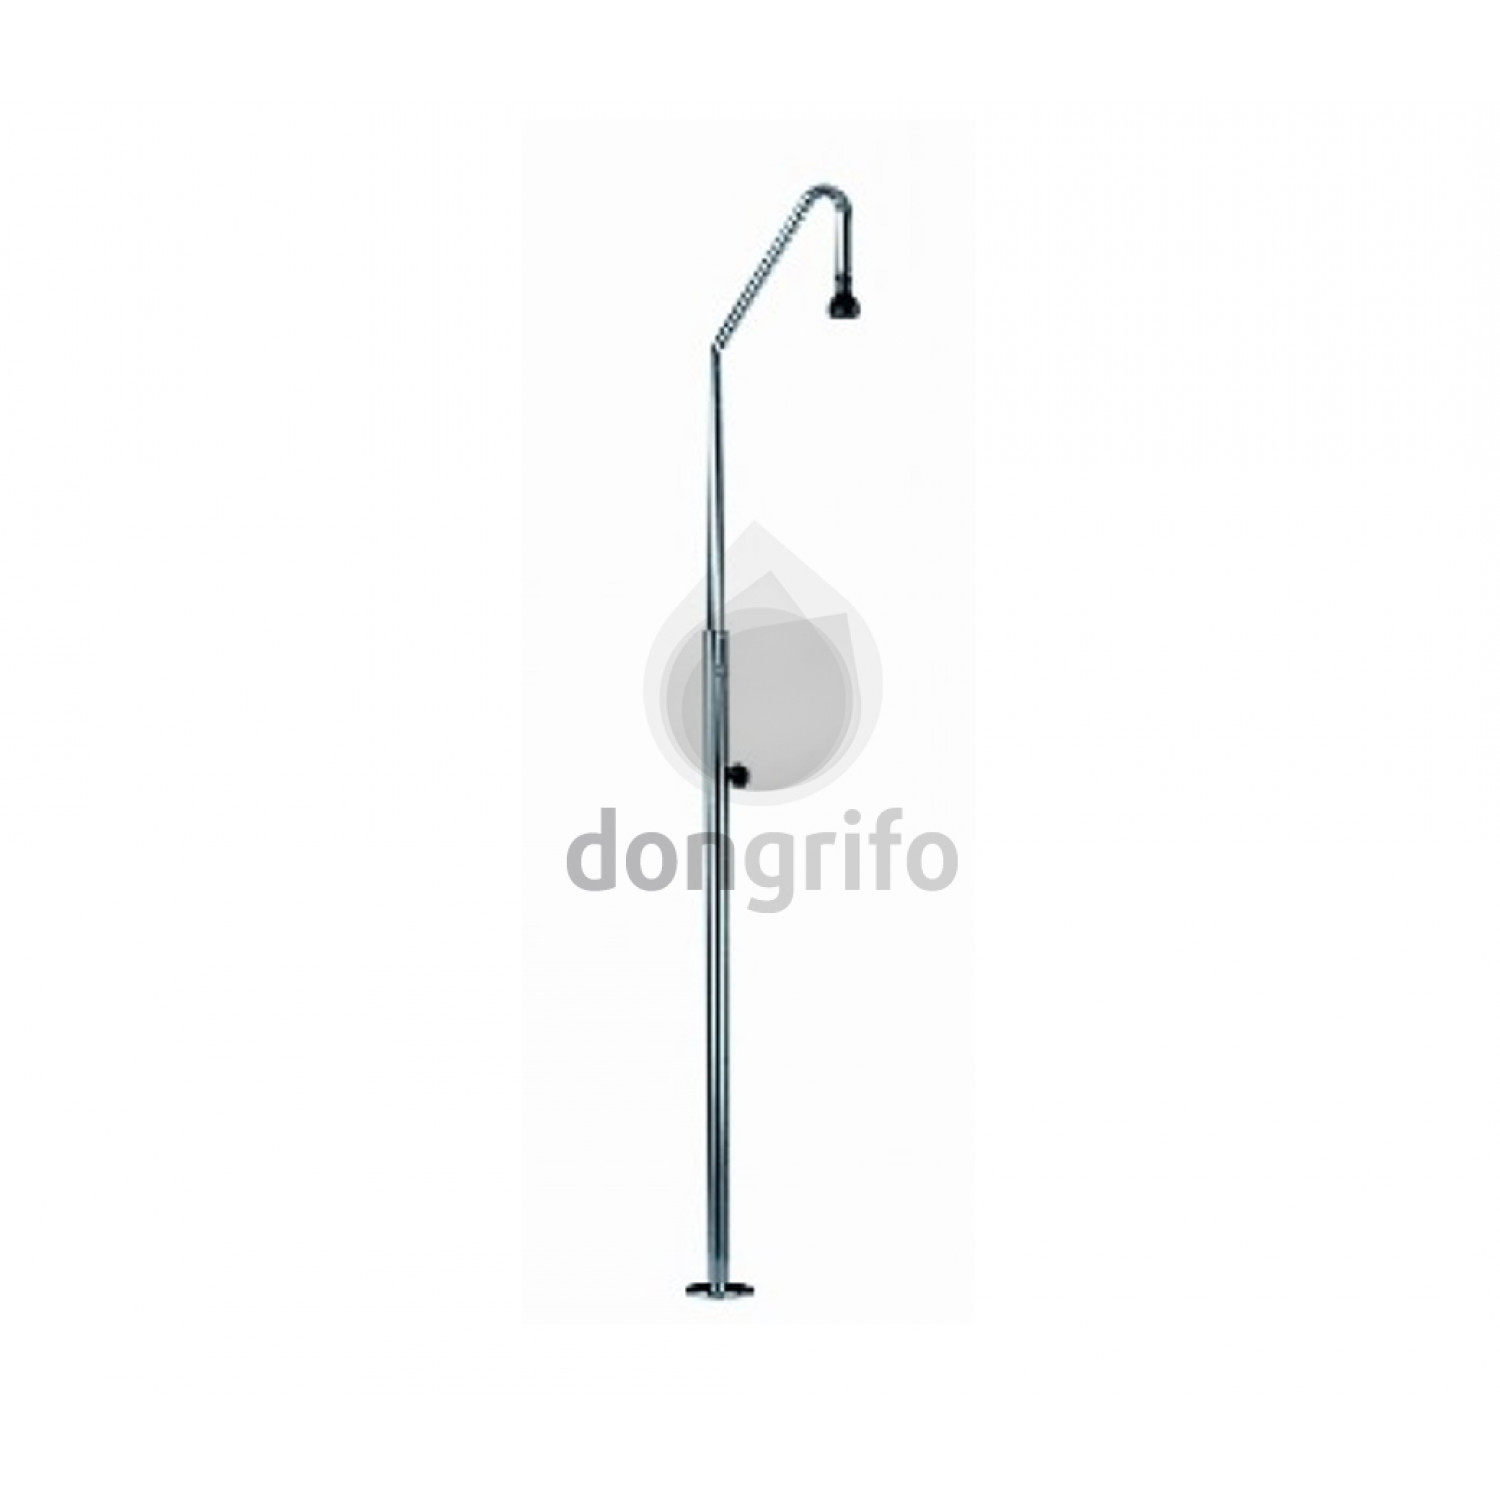 Ducha piscina coral acero inox aisi 304 12001161 for Ducha piscina pared